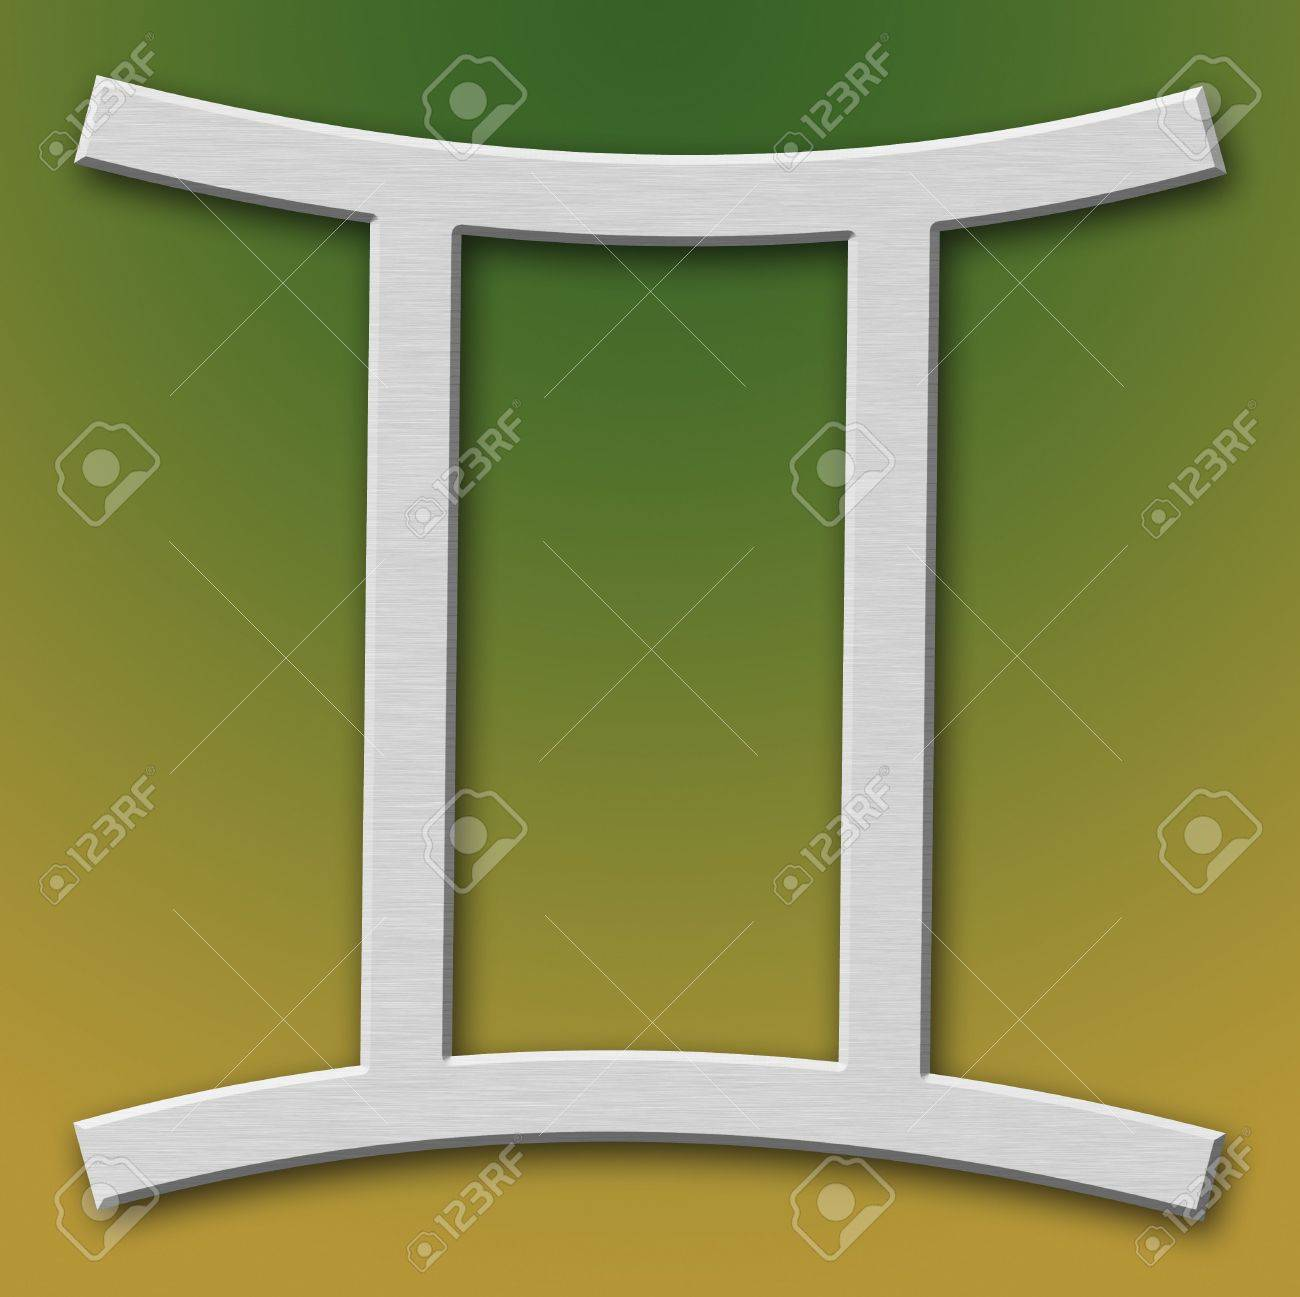 Gemini Aluminum Symbol on background degraded Stock Photo - 359308